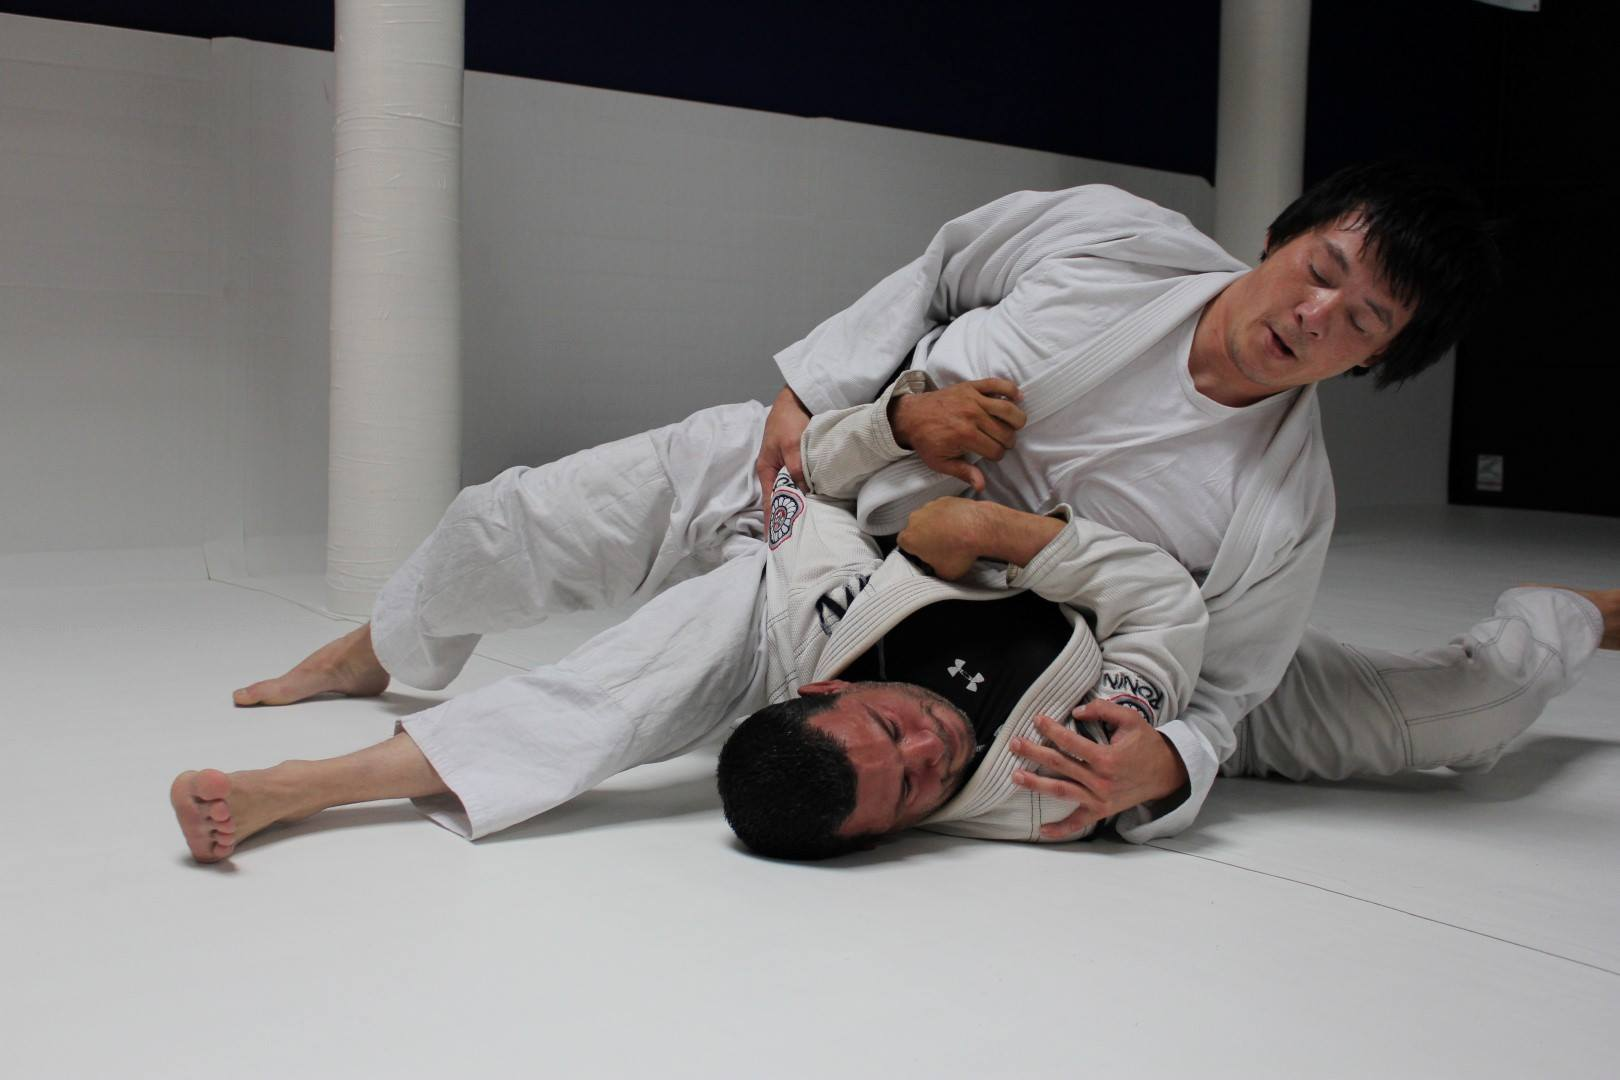 Henry Akins: The Most Important Detail Which Makes You Recover Guard